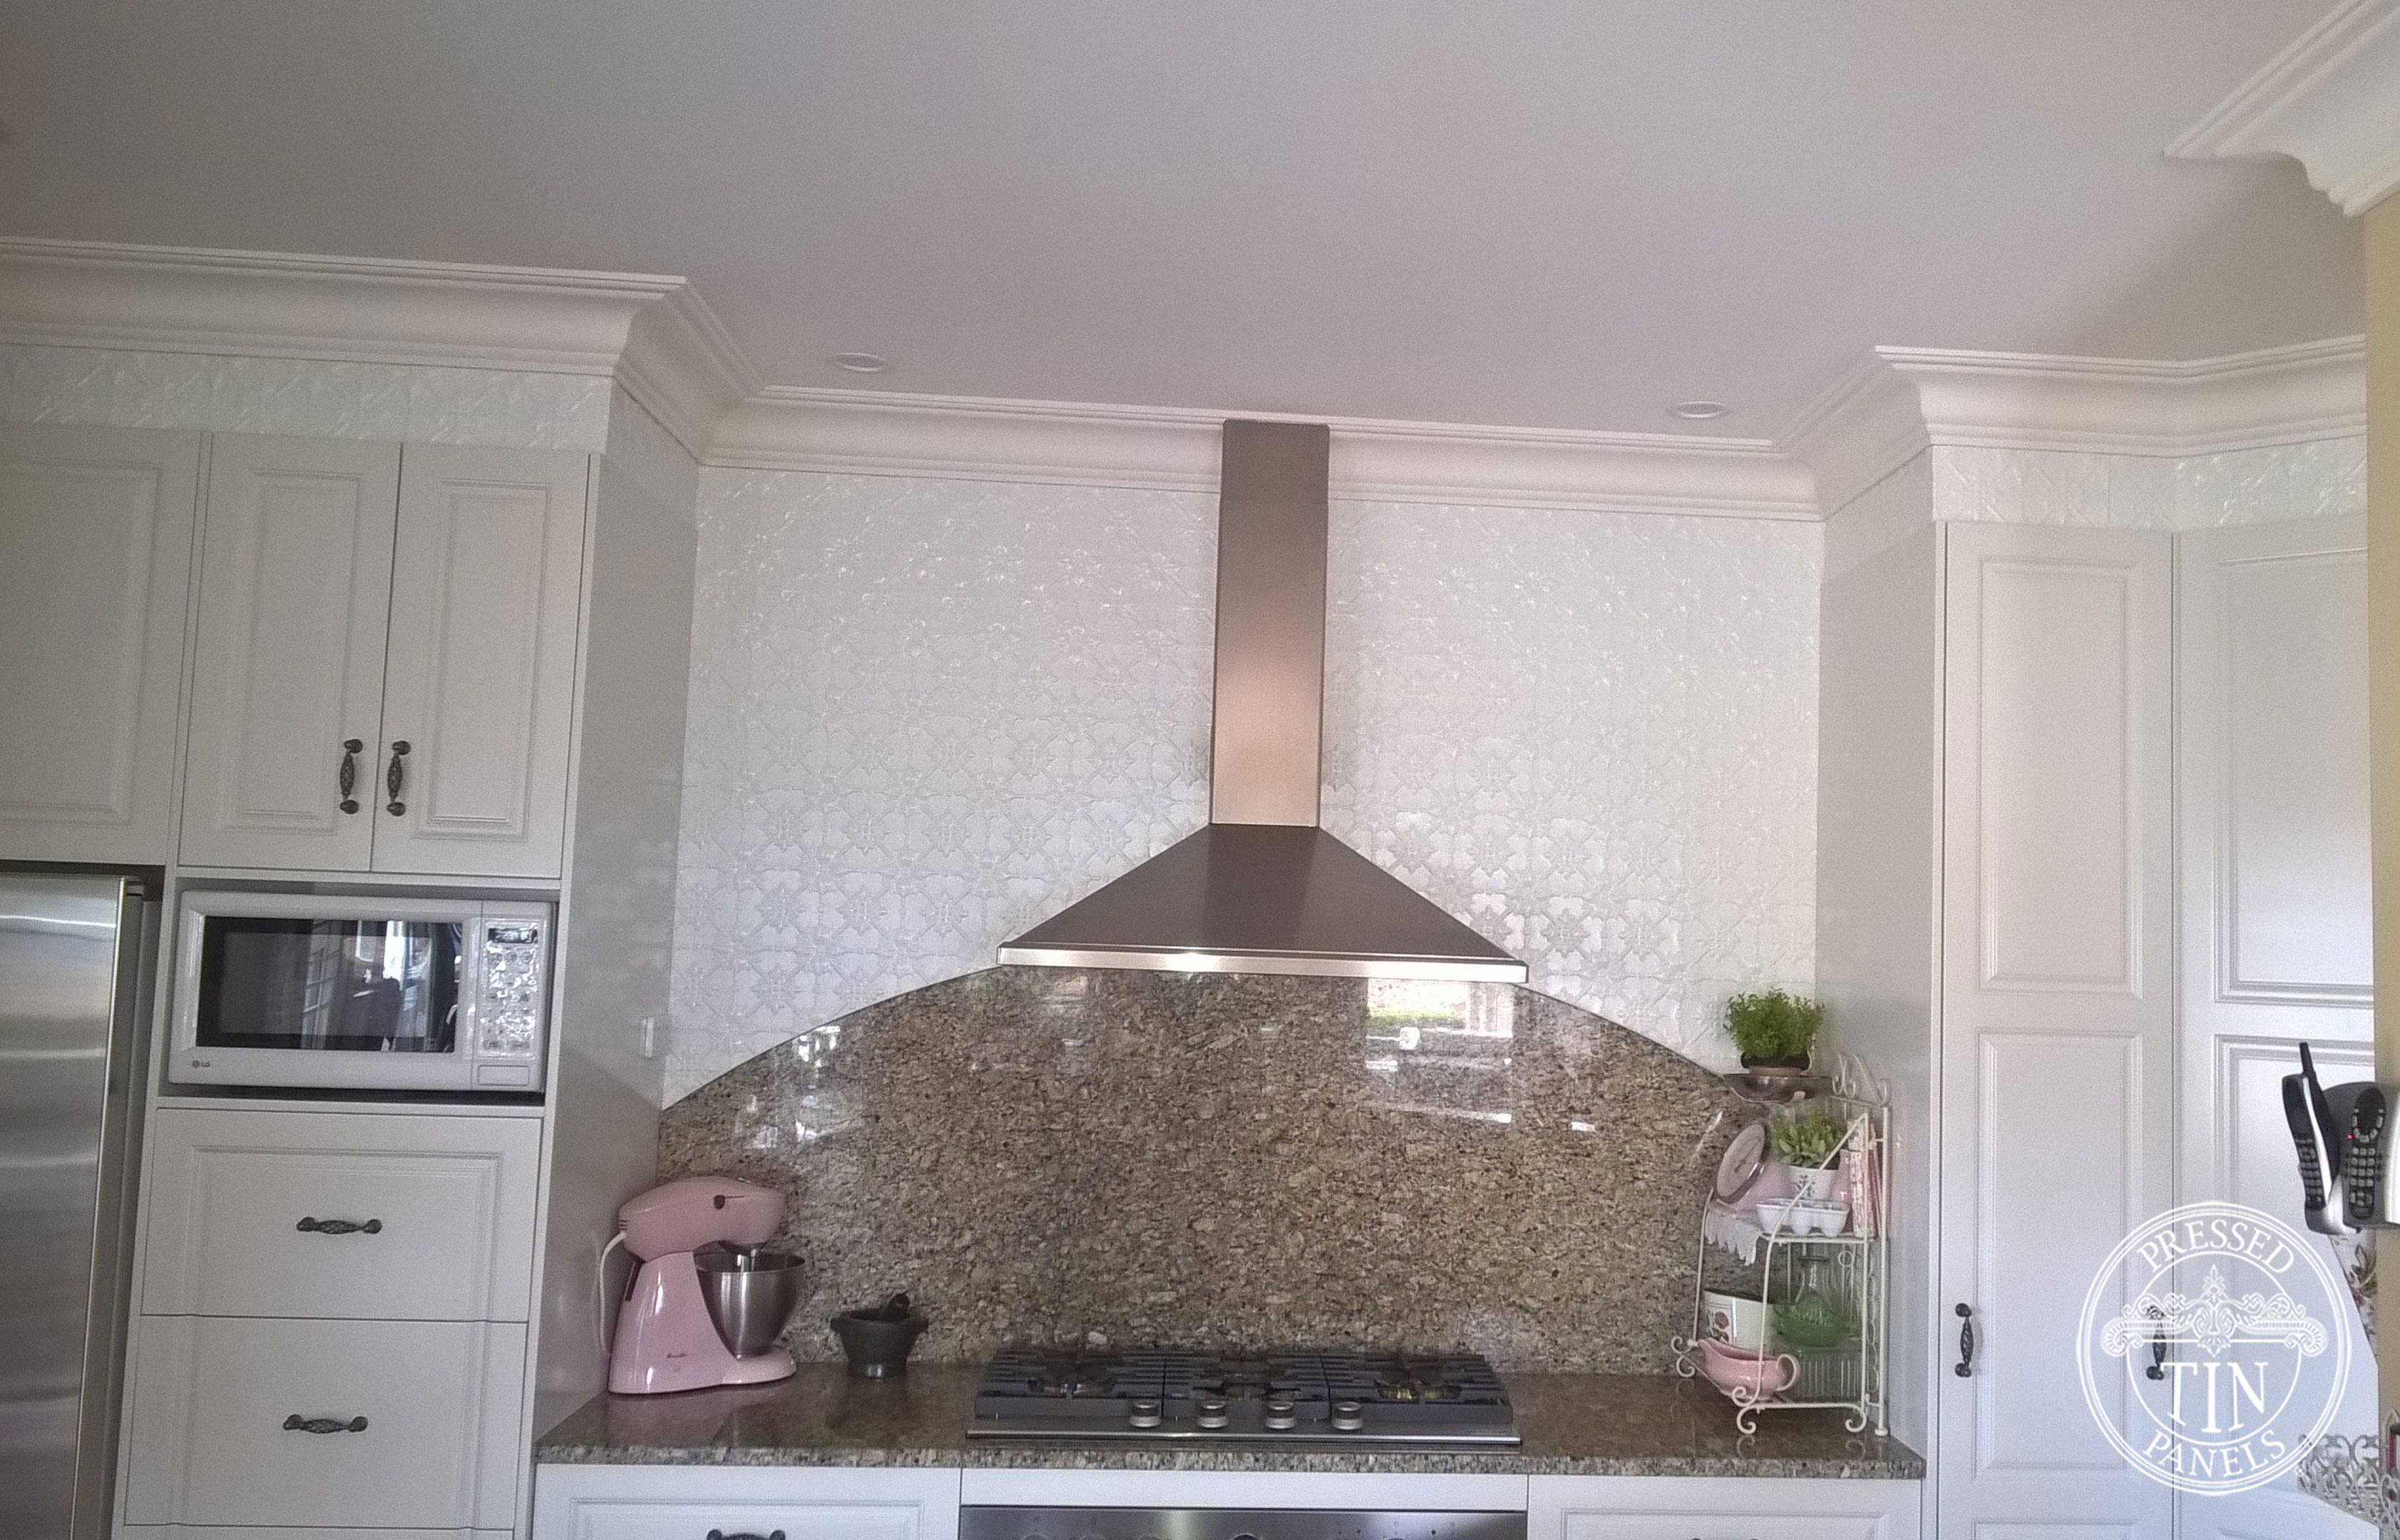 Pressed Tin Panels Original pattern in Interpon White Satin Powder Coat-Kitchen Feature Wall and Bench